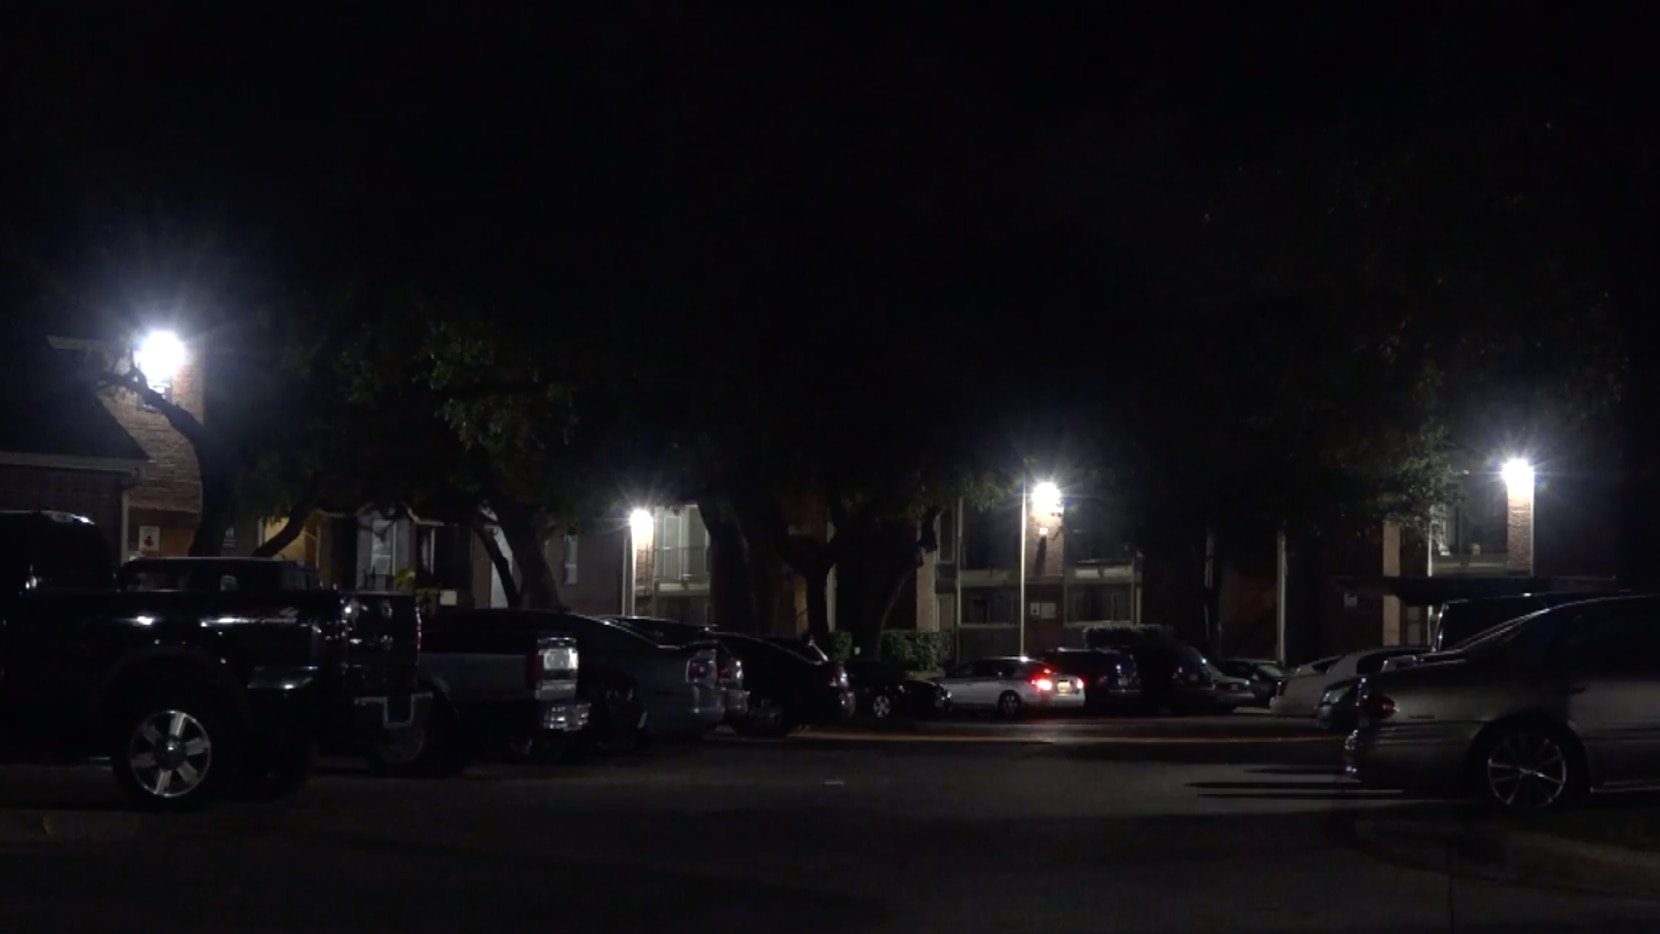 Officers responded about 6 p.m. to the Magnolia Creek Apartments in the 7200 block of Marvin D. Love Freeway, near West Camp Wisdom Road.